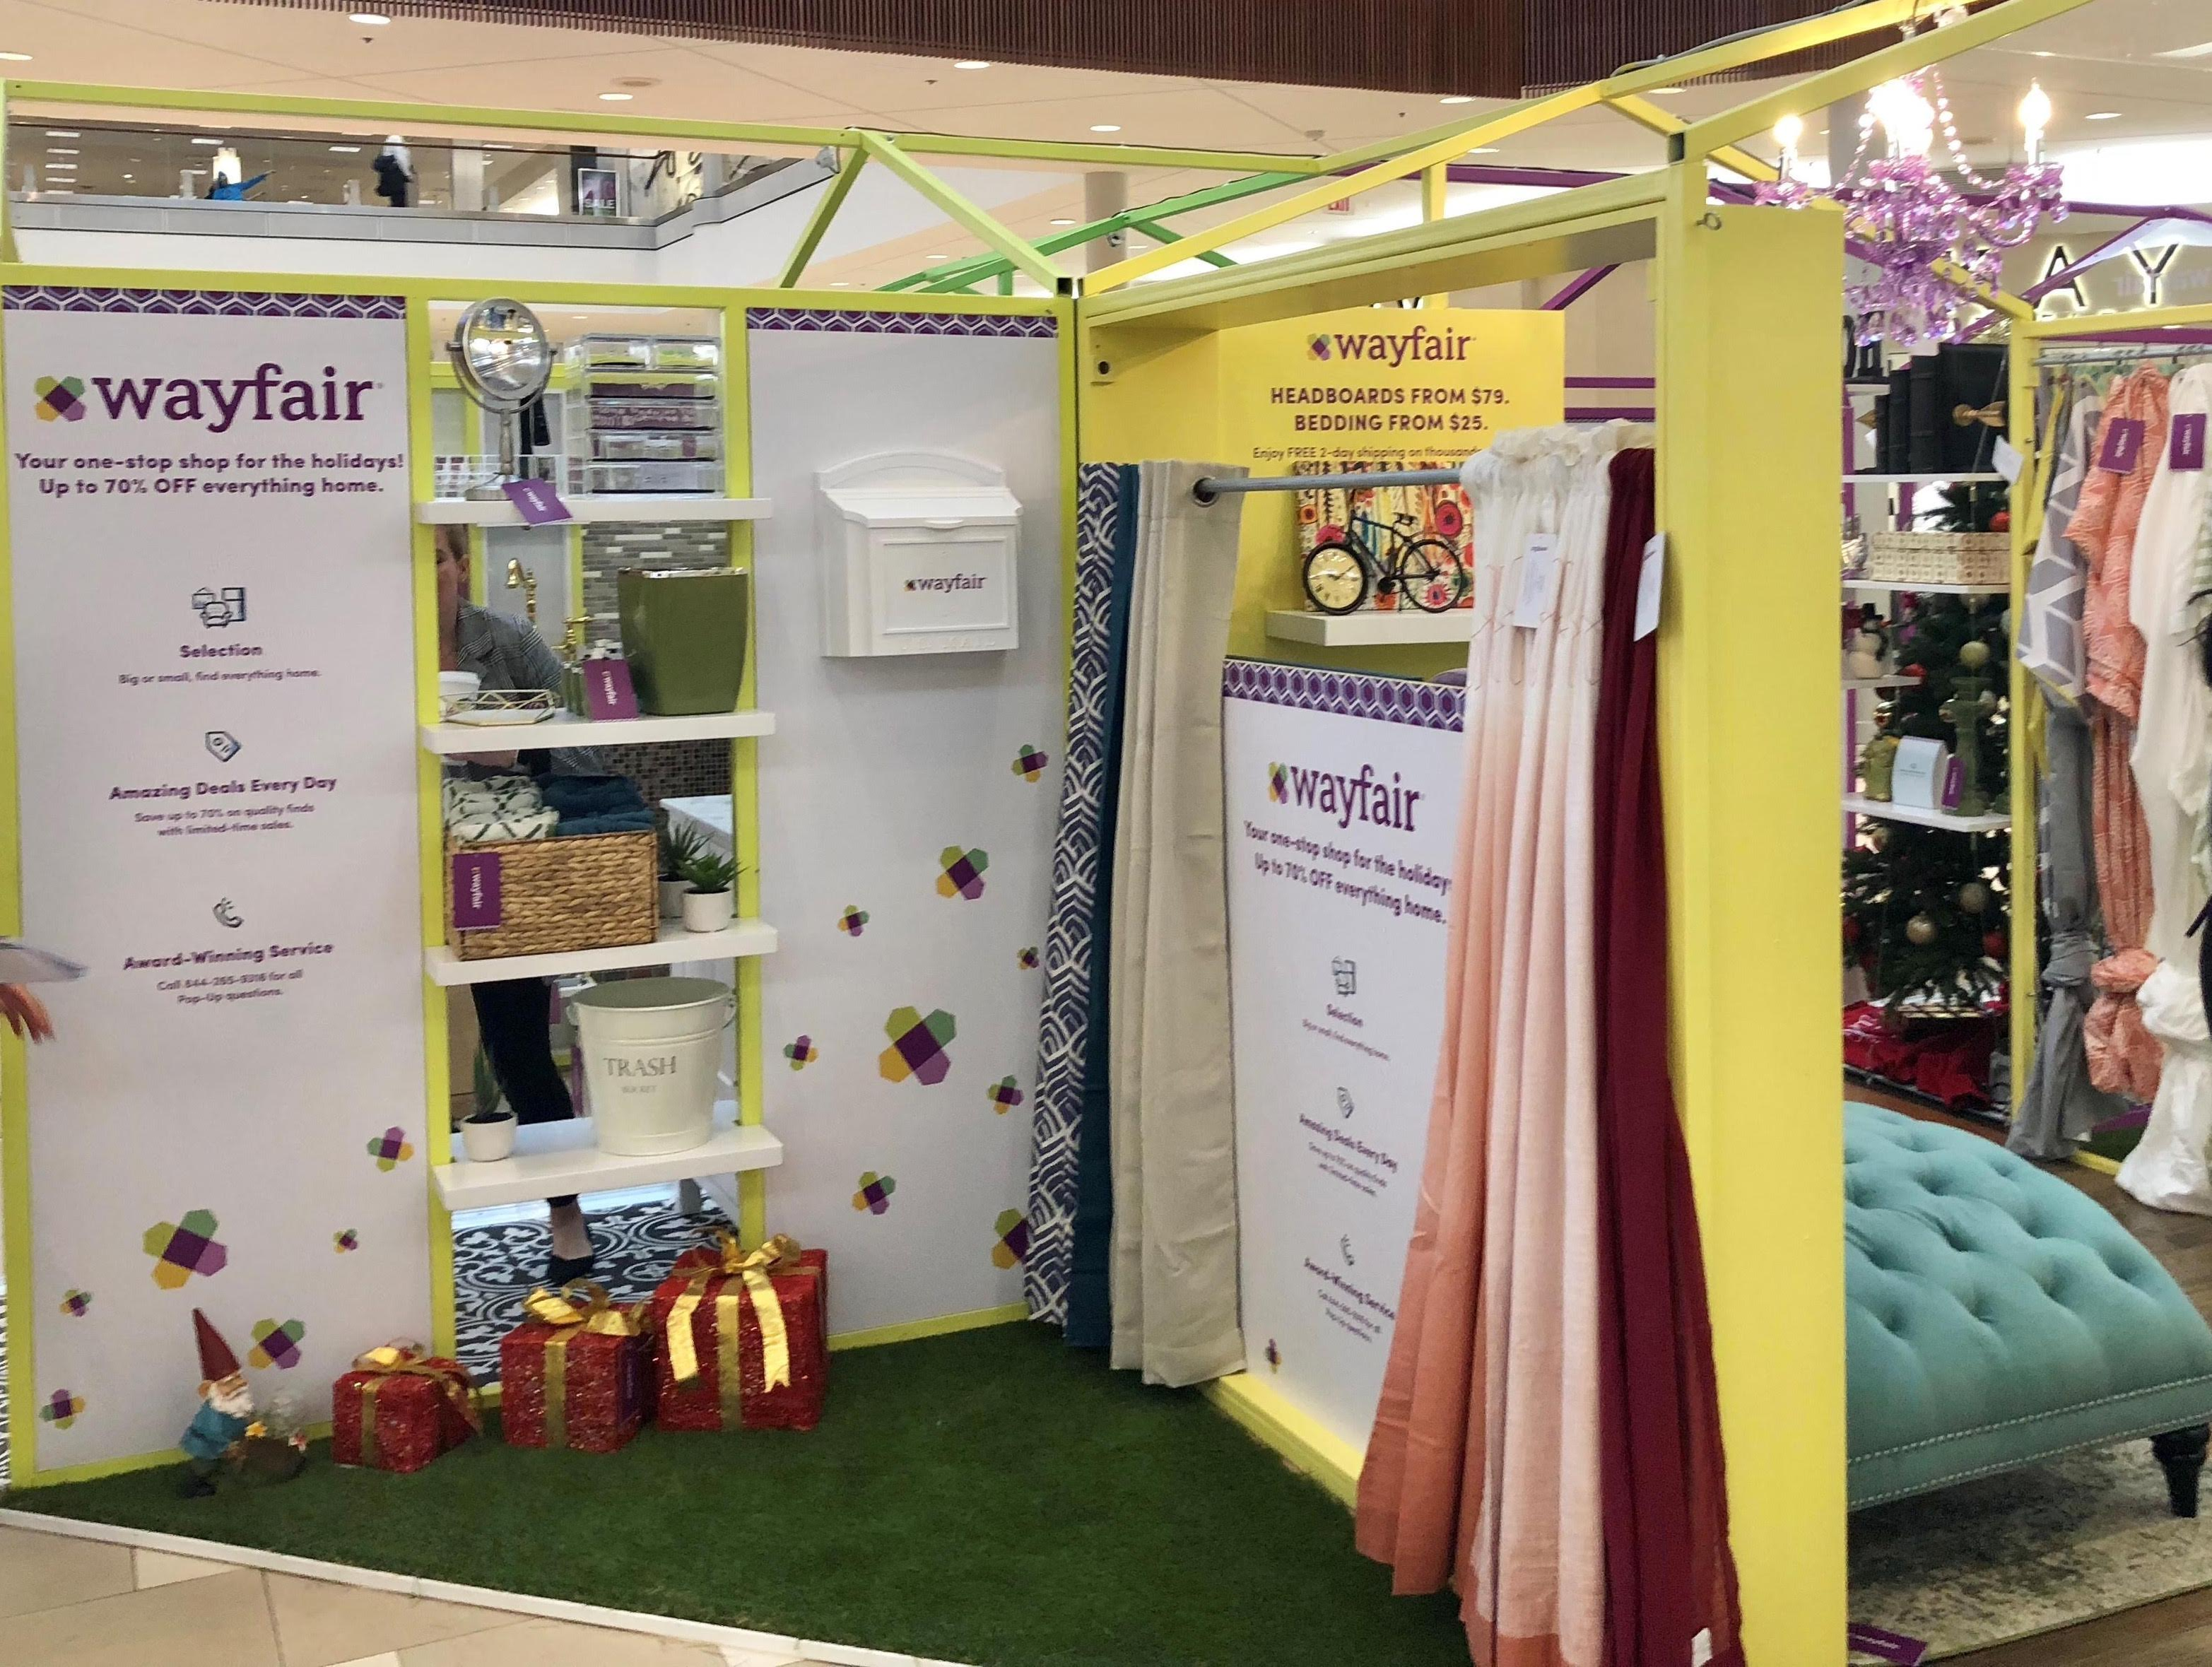 Wayfair pop-up at Natick Mall